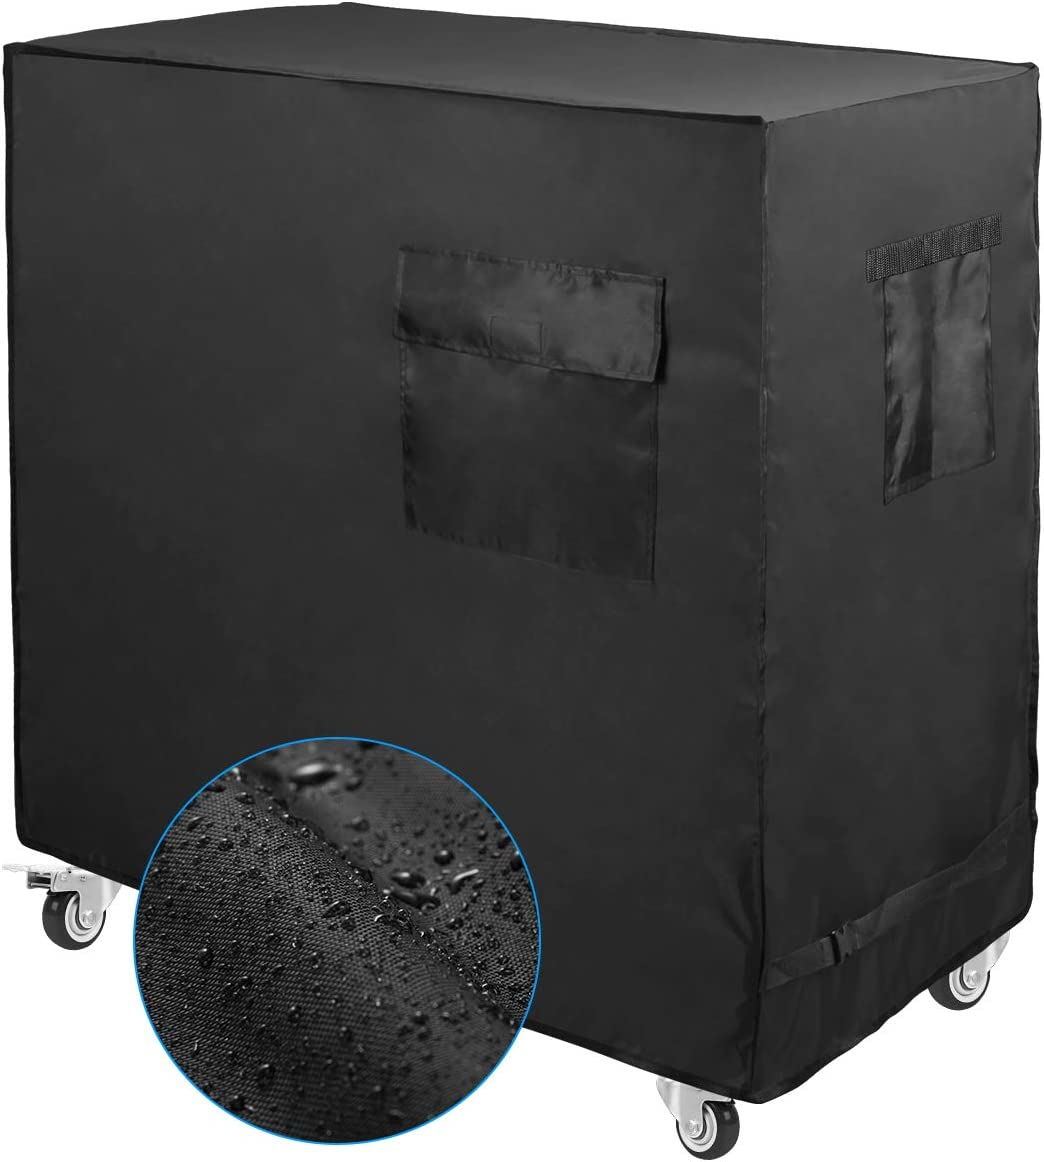 Luxiv Cooler Cart Cover Black, Waterproof Rolling Cooler Cover 34L x 20W x 32H inches 80 Quart Rolling Ice Chest Cover for Anti Rain, Sunlight, Dust (34L x 20W x 32H)